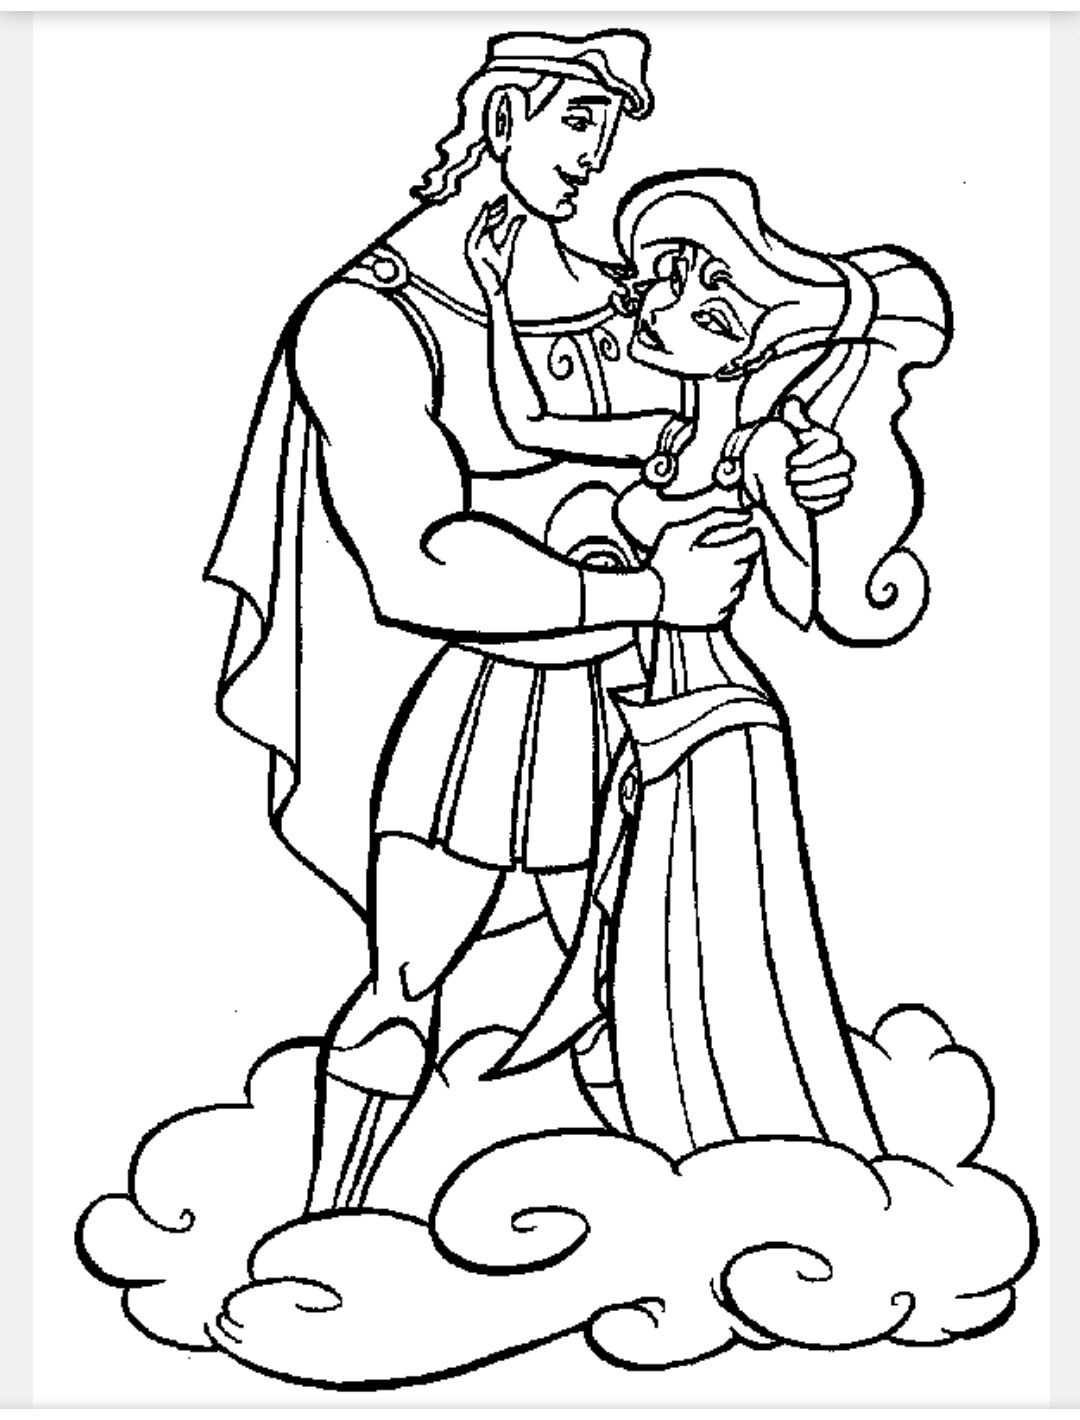 Hercules And Meg Coloring Pages Disney Coloring Pages Cartoon Coloring Pages Disney Princess Coloring Pages